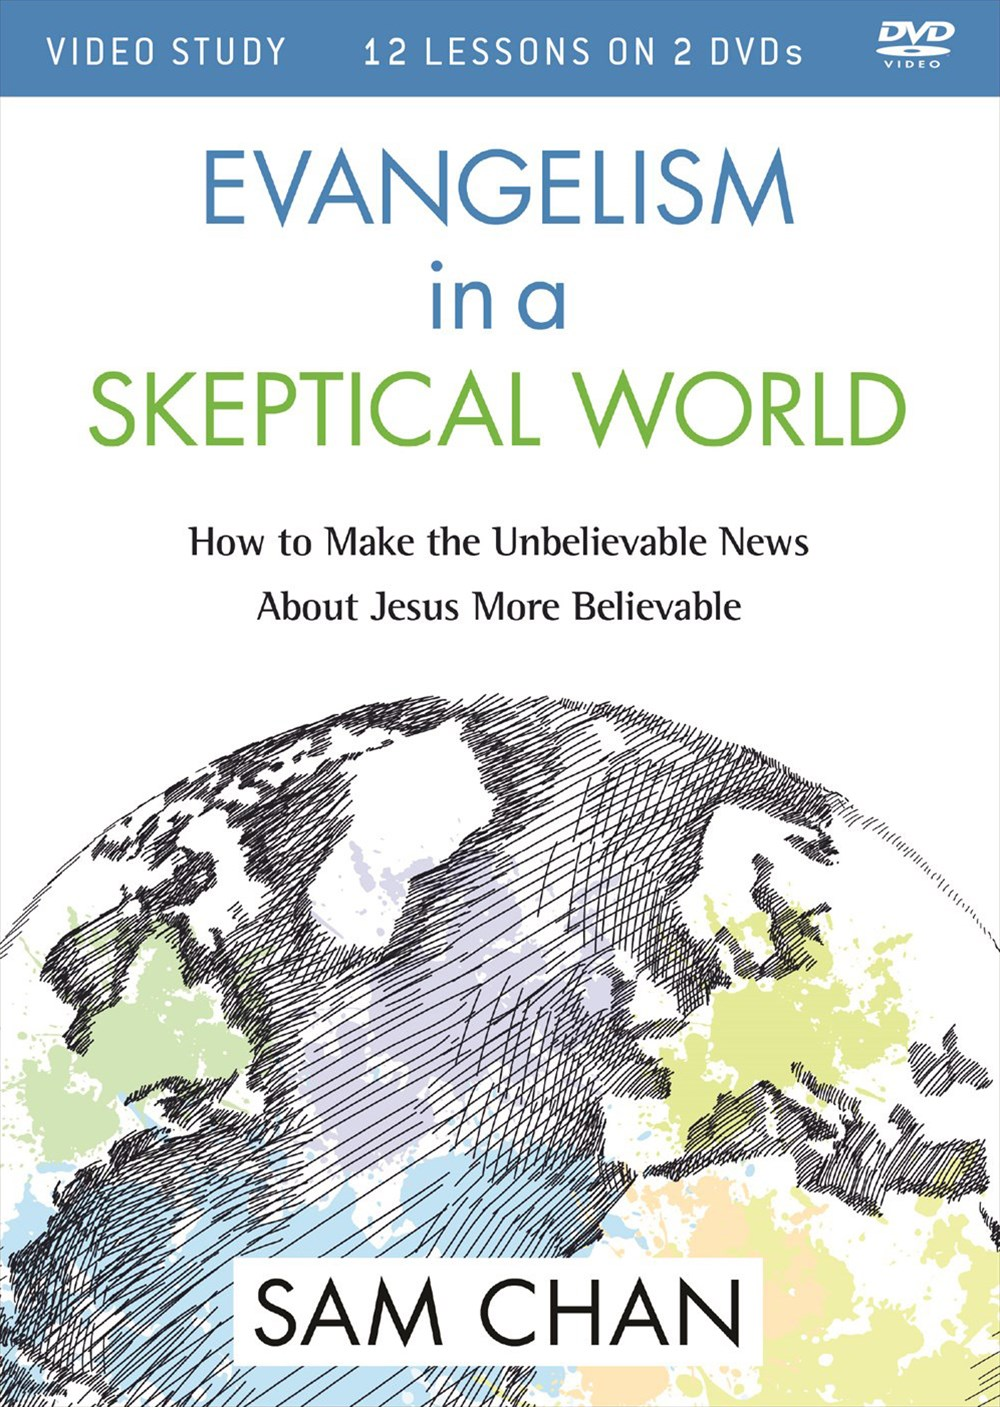 Evangelism In A Skeptical World Video Study: How To Make The Unbelievable News About Jesus More Believable